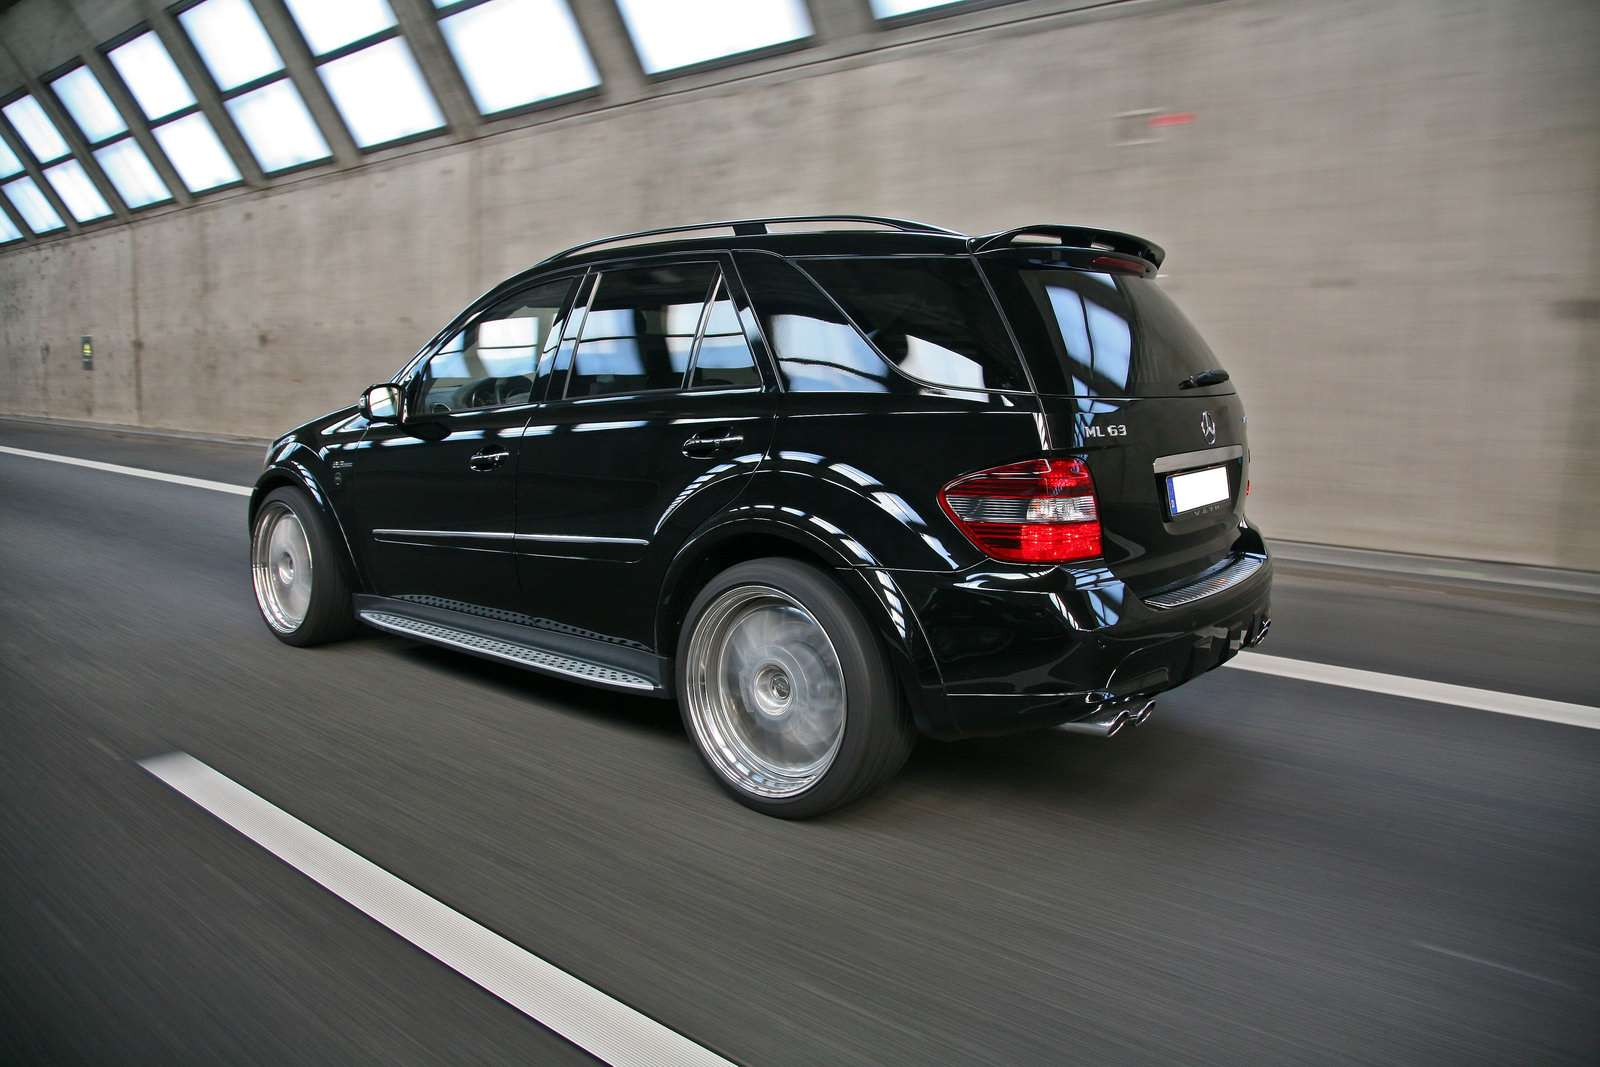 Mercedes ML 63 AMG VATH 2009